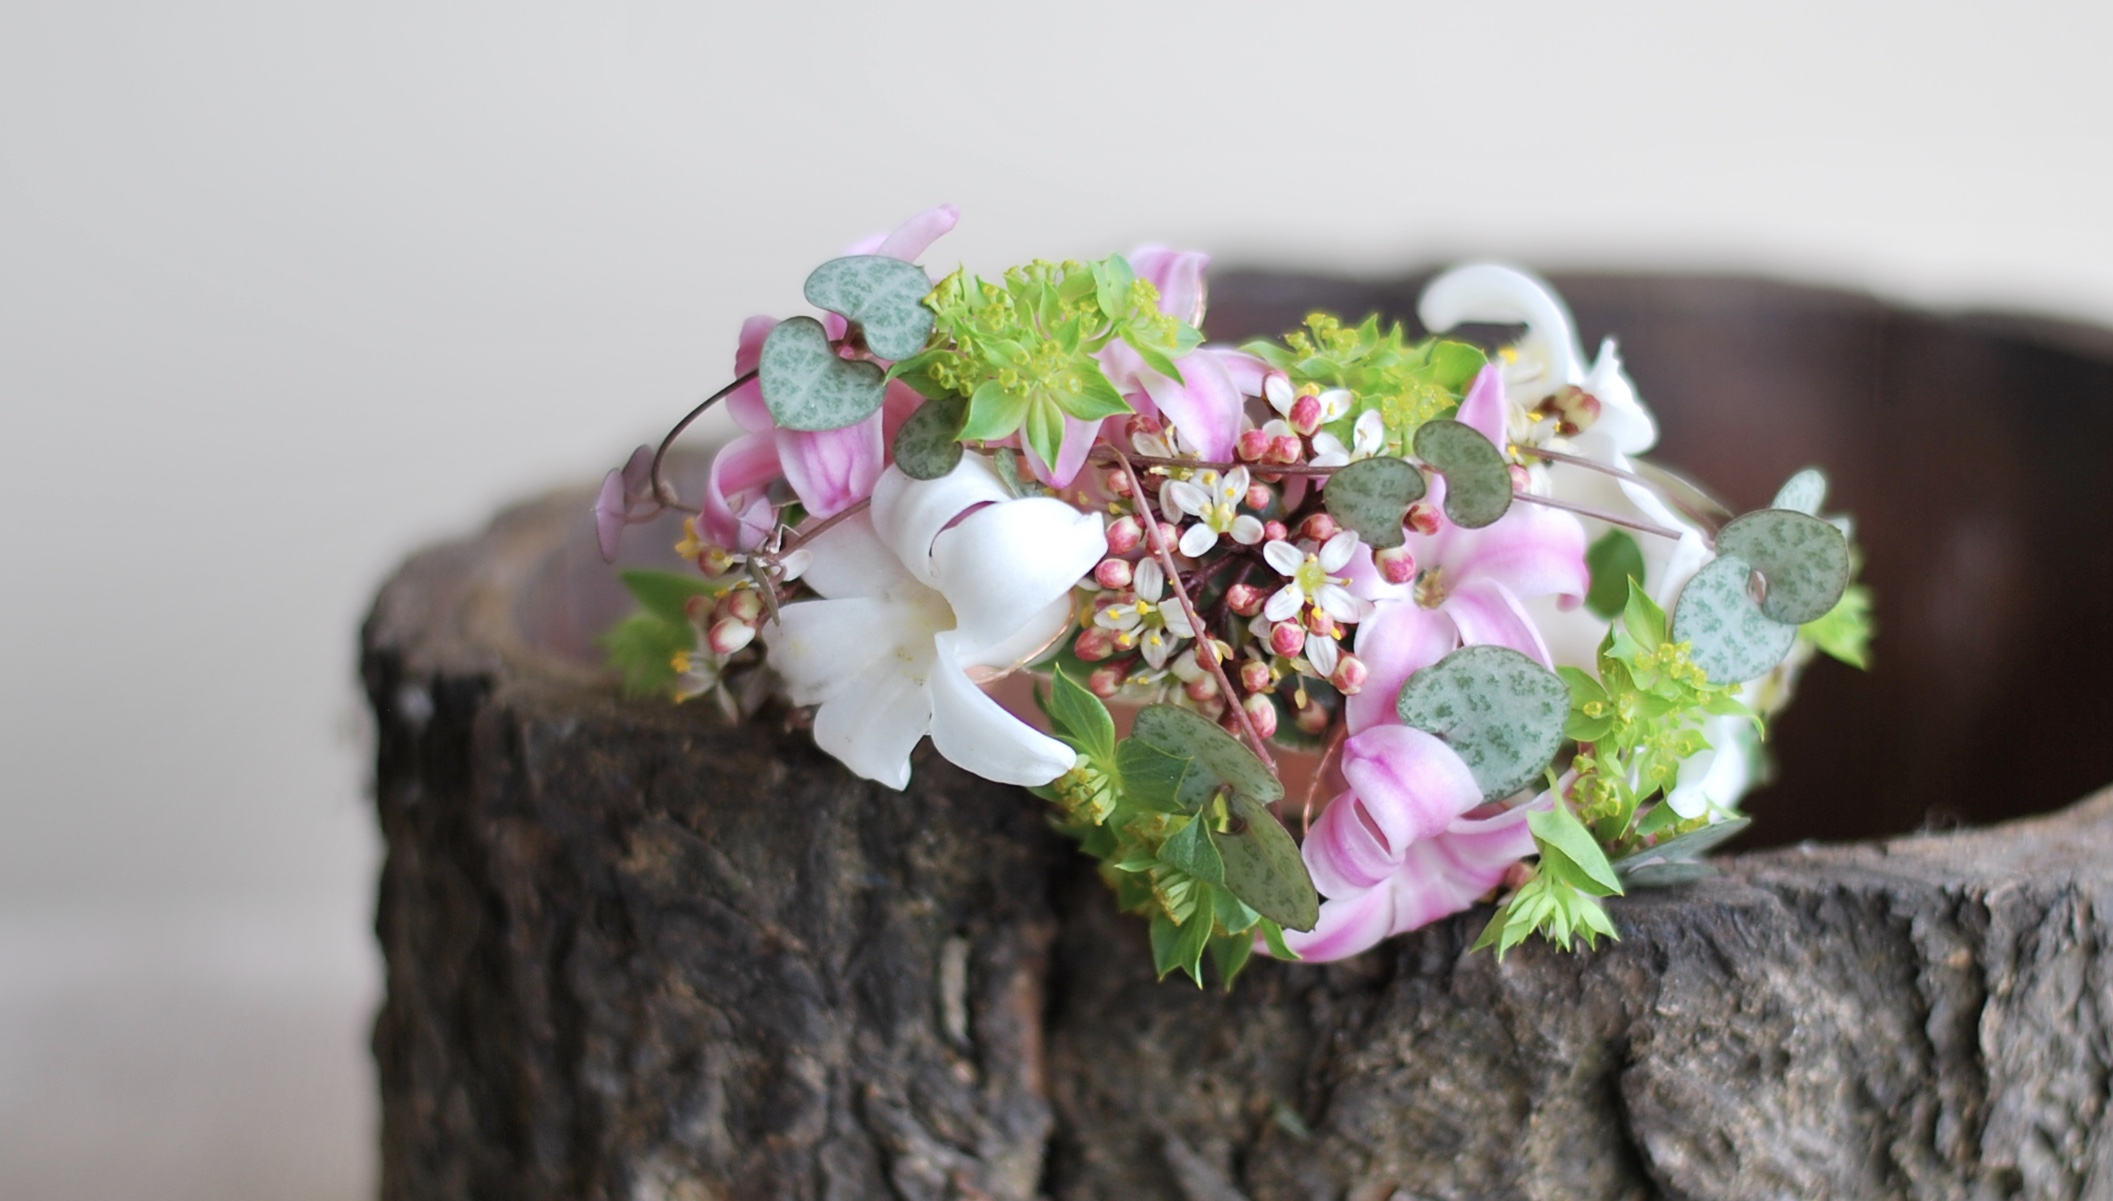 Floral Jewellery/Corsage for weddings, Birthdays,Anniversary and or Mother's day gift and also for Graduation prom by Floral Design by Lili ,  Vancouver/ Fraser Valley Florist.